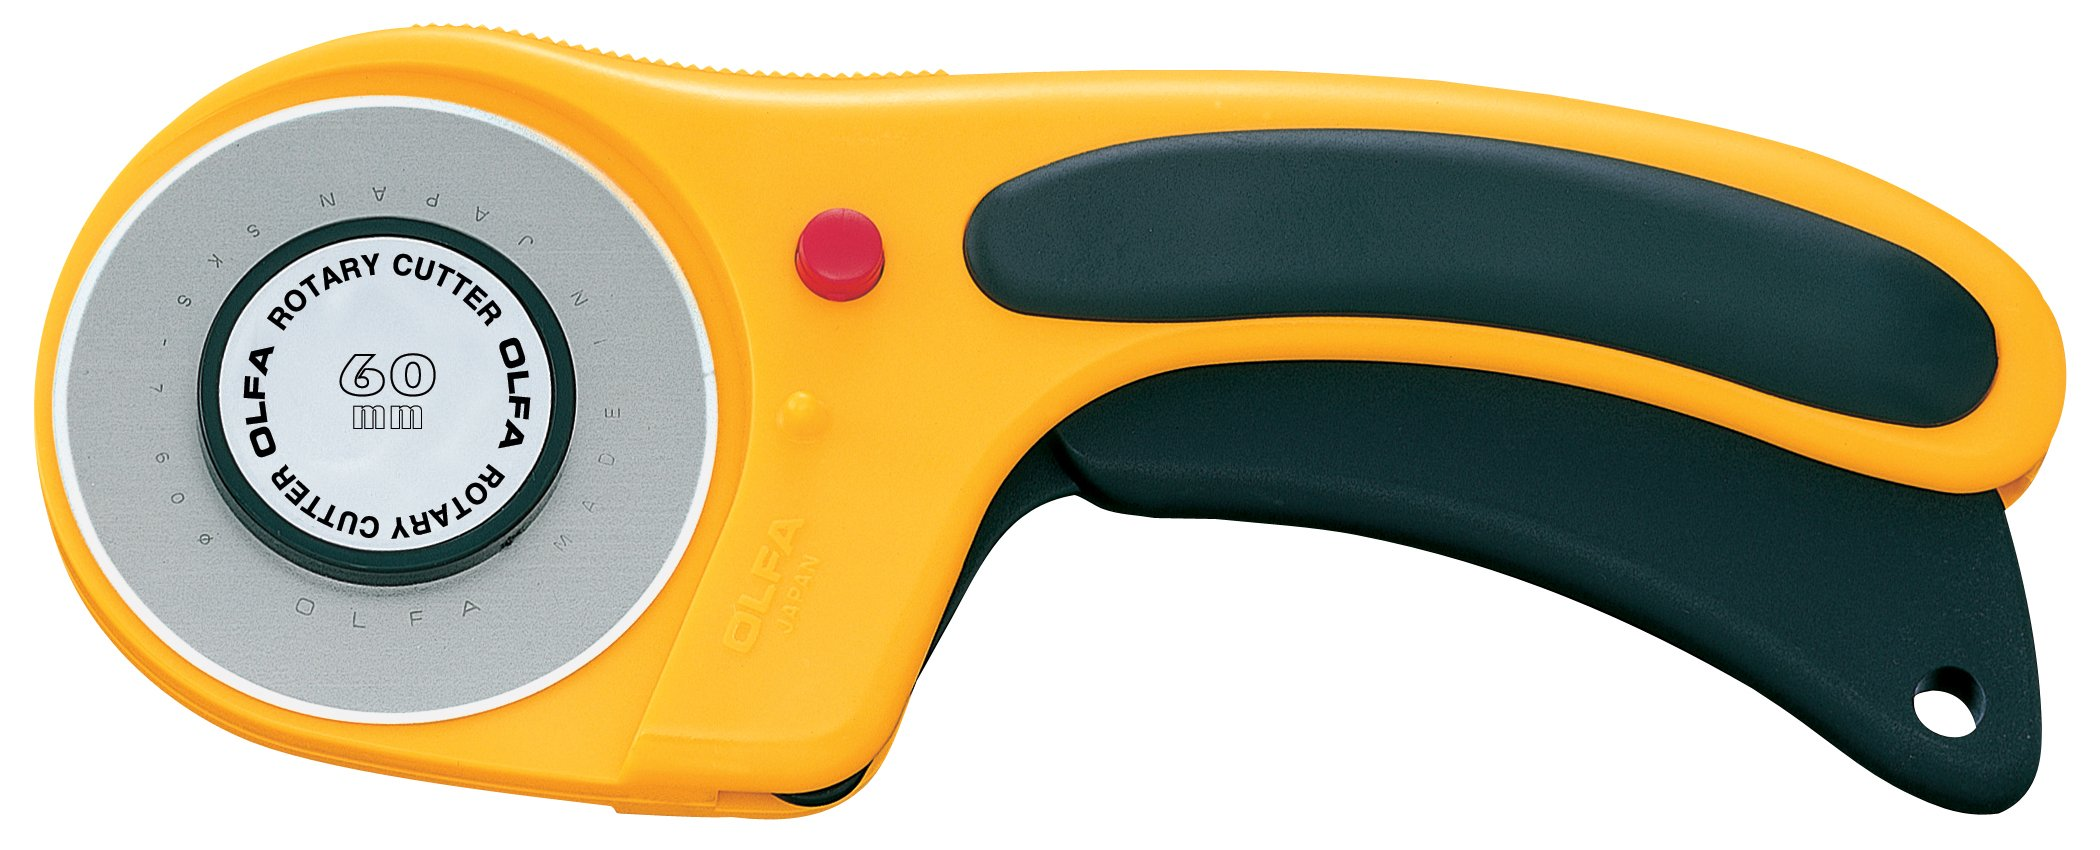 Olfa Deluxe Rotary Cutter (60mm) by OLFA